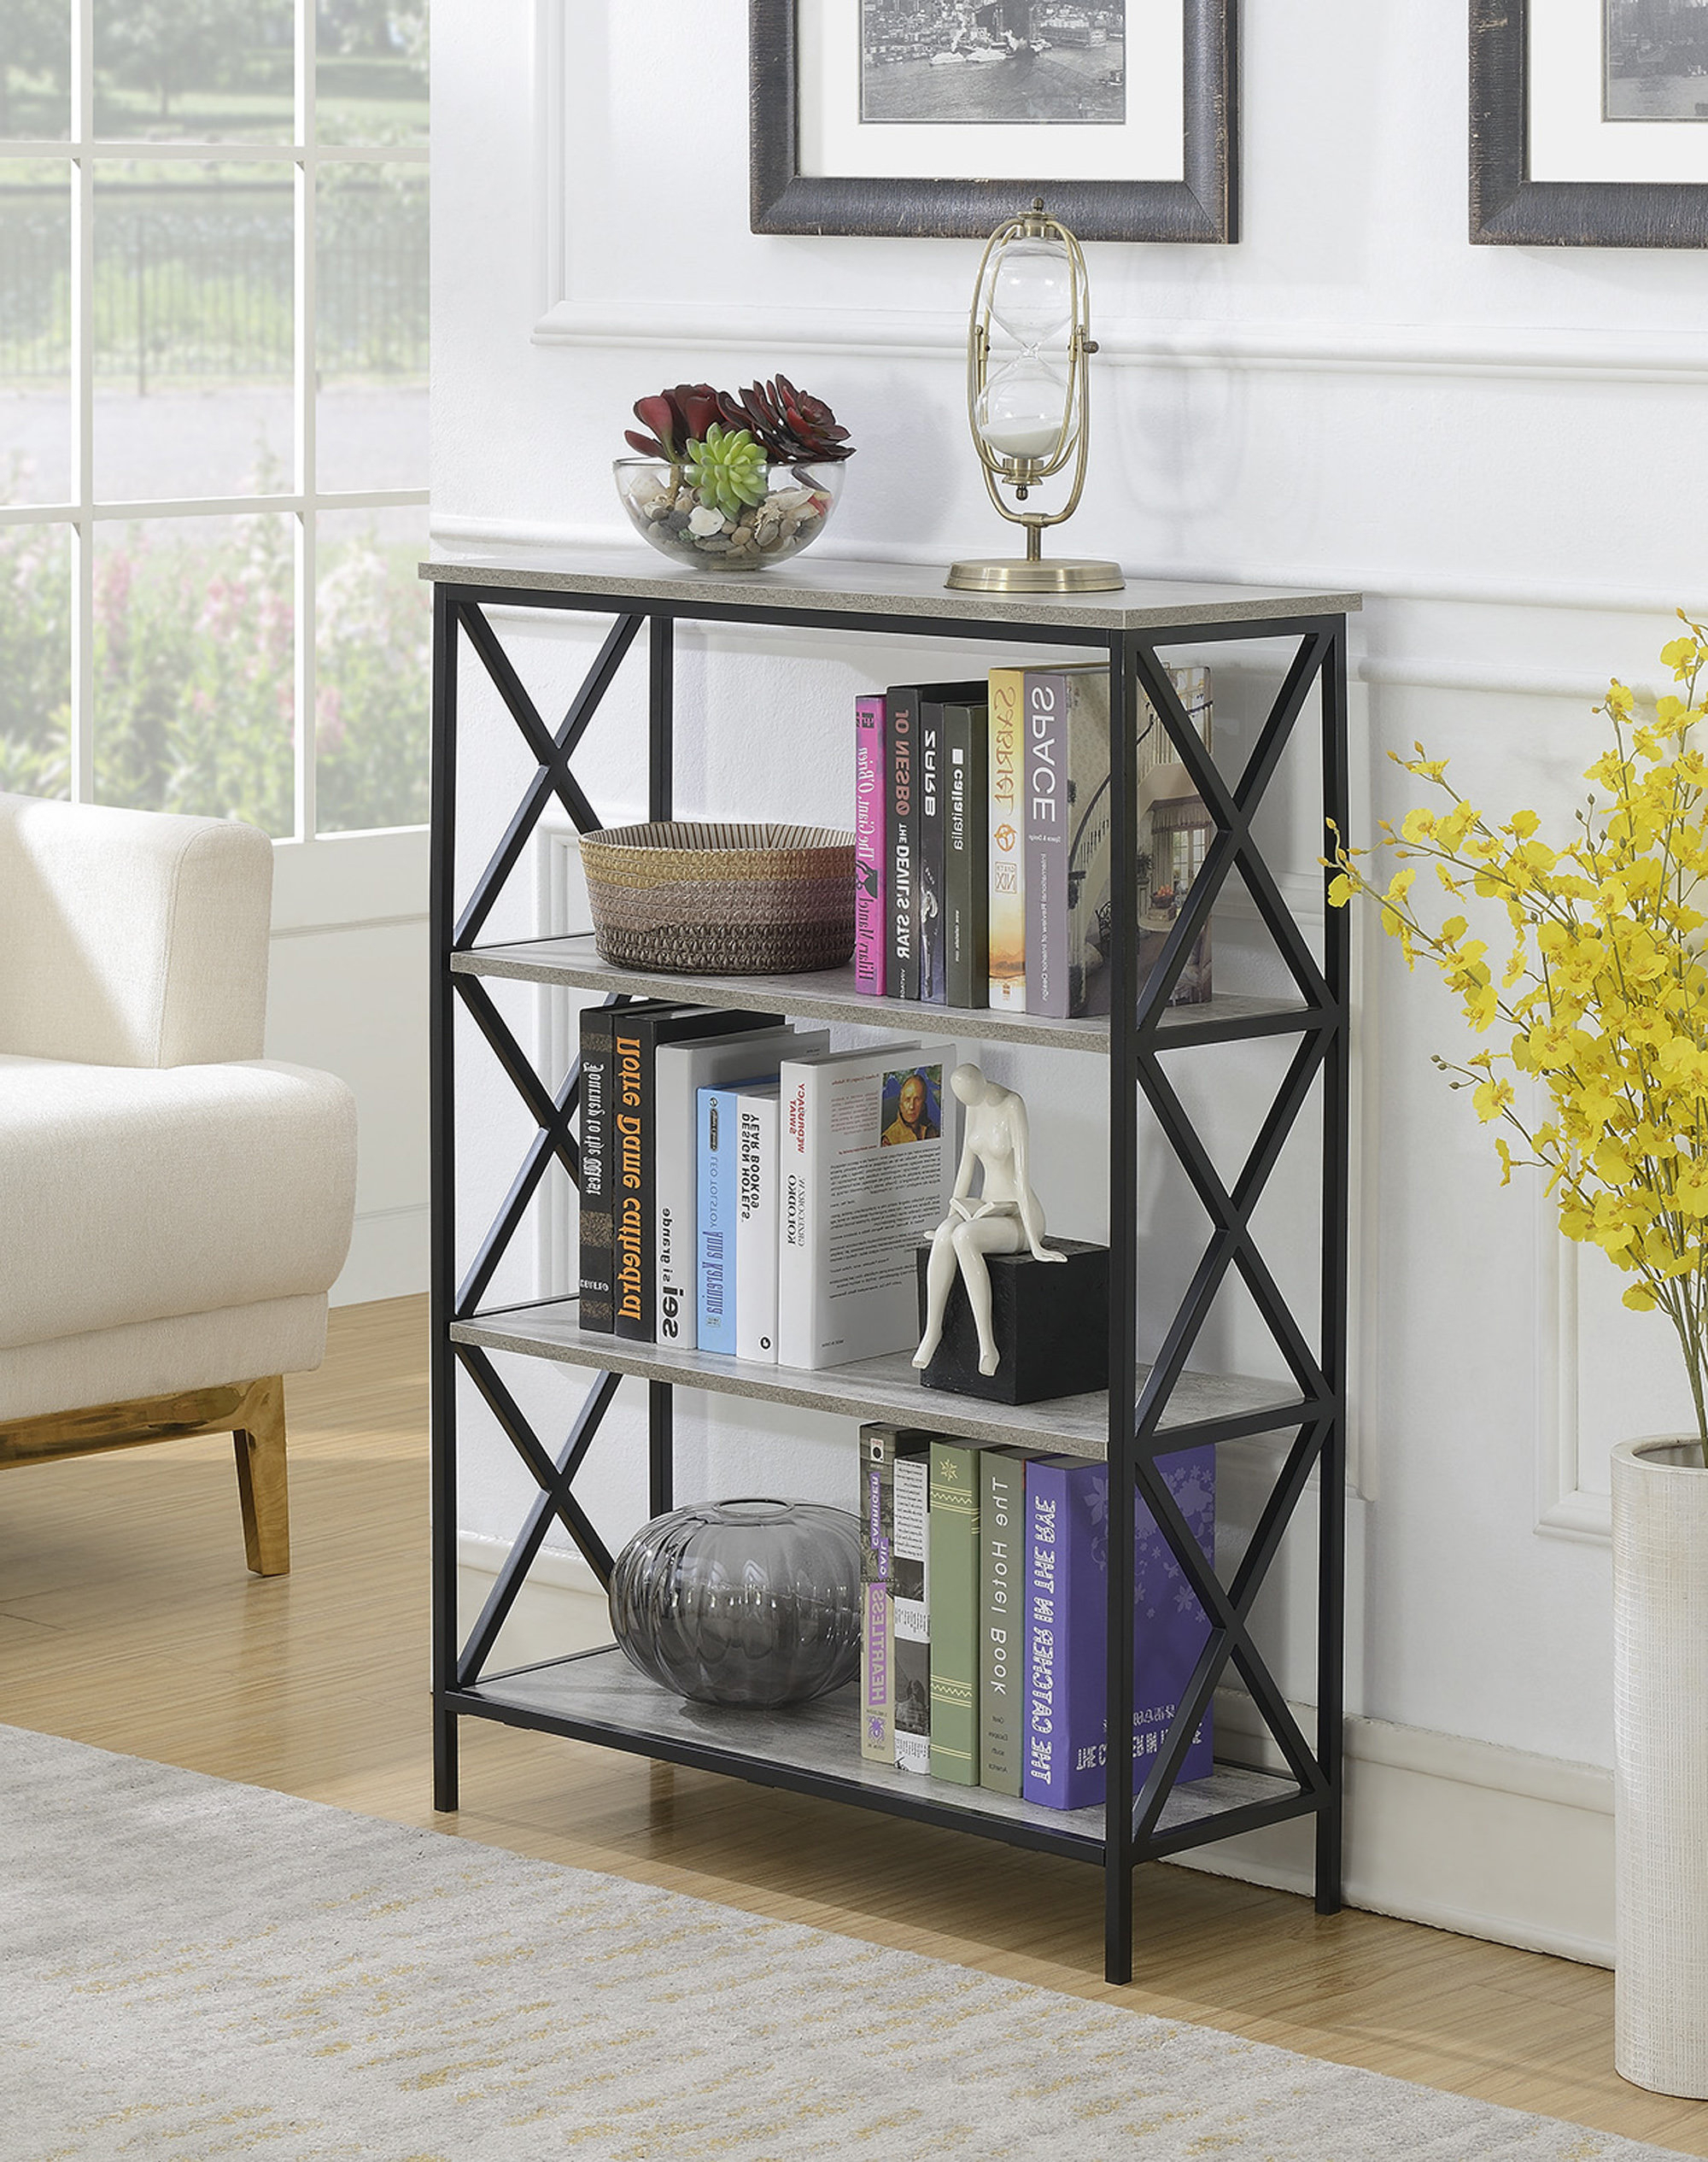 Widely Used Abbottsmoor Etagere Bookcases Within Abbottsmoor Etagere Bookcase (View 18 of 20)